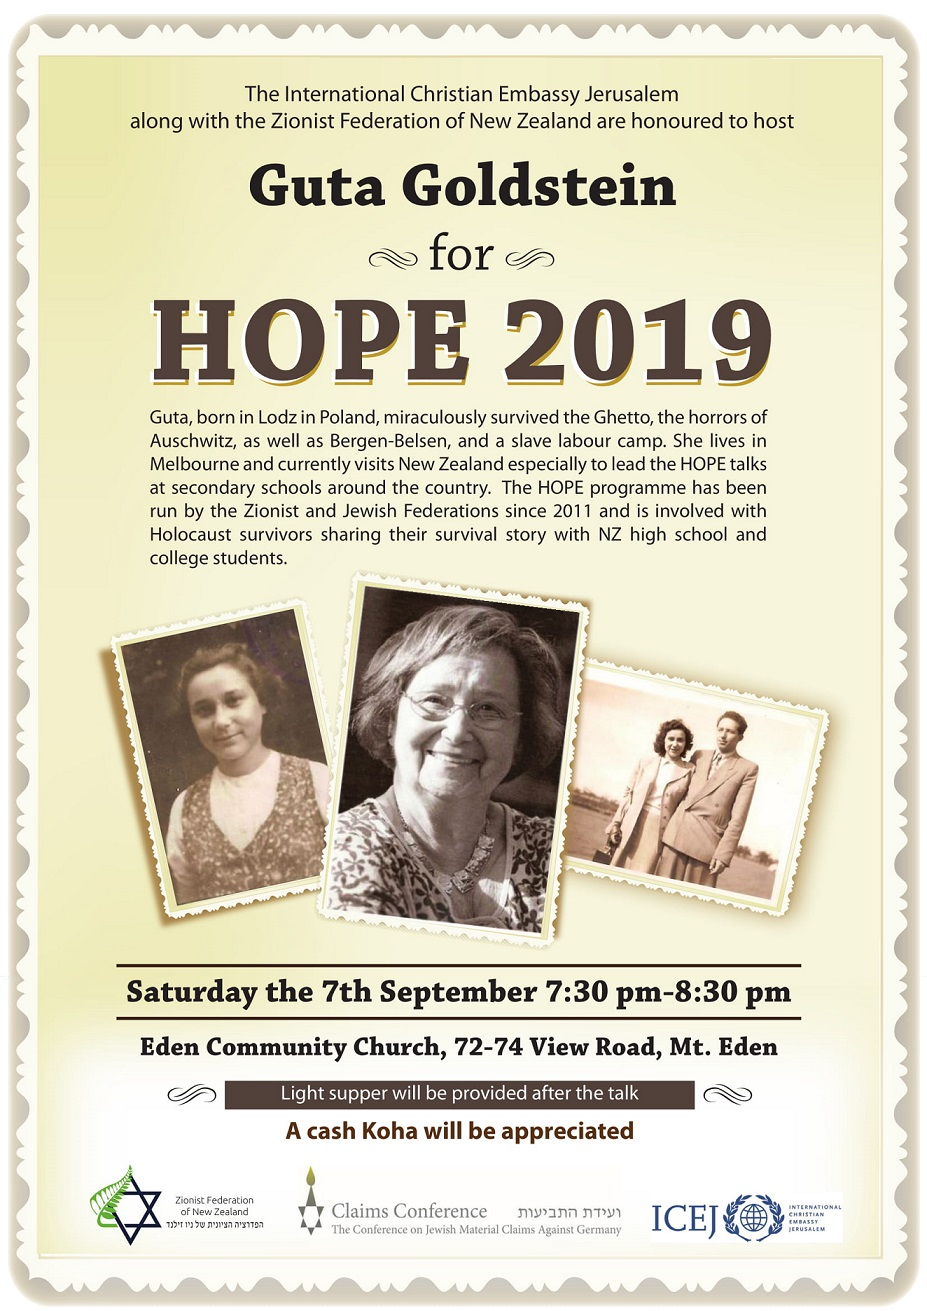 Poster - Public HOPE talk on Saturday 7th September 7 30 pm to 8 30 pm.jpg